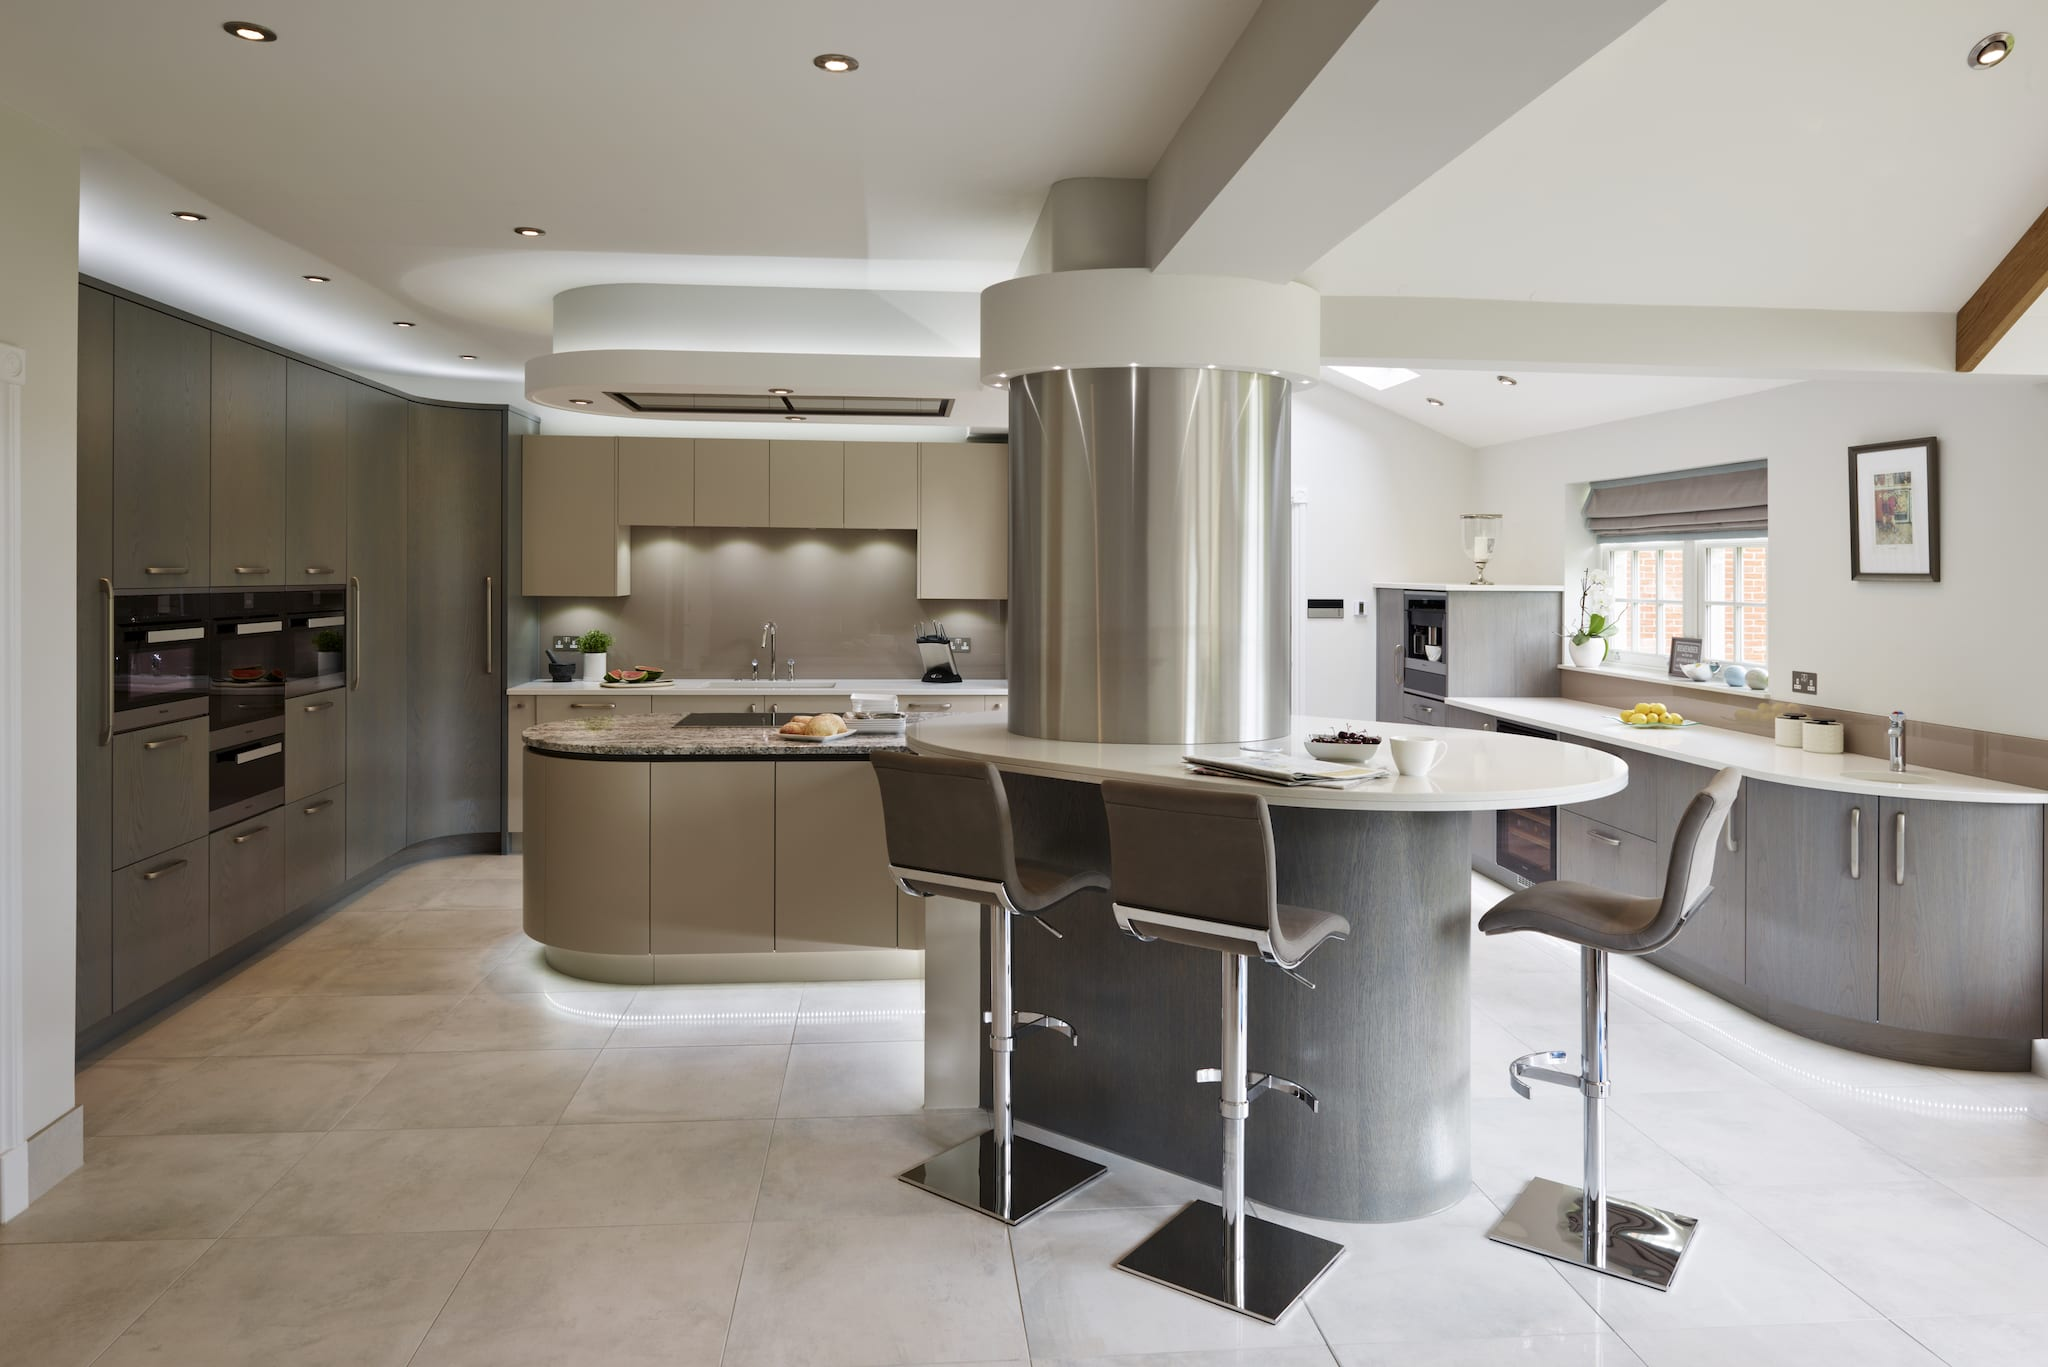 Exclusive Handmade Amp Bespoke Kitchens From Davonport